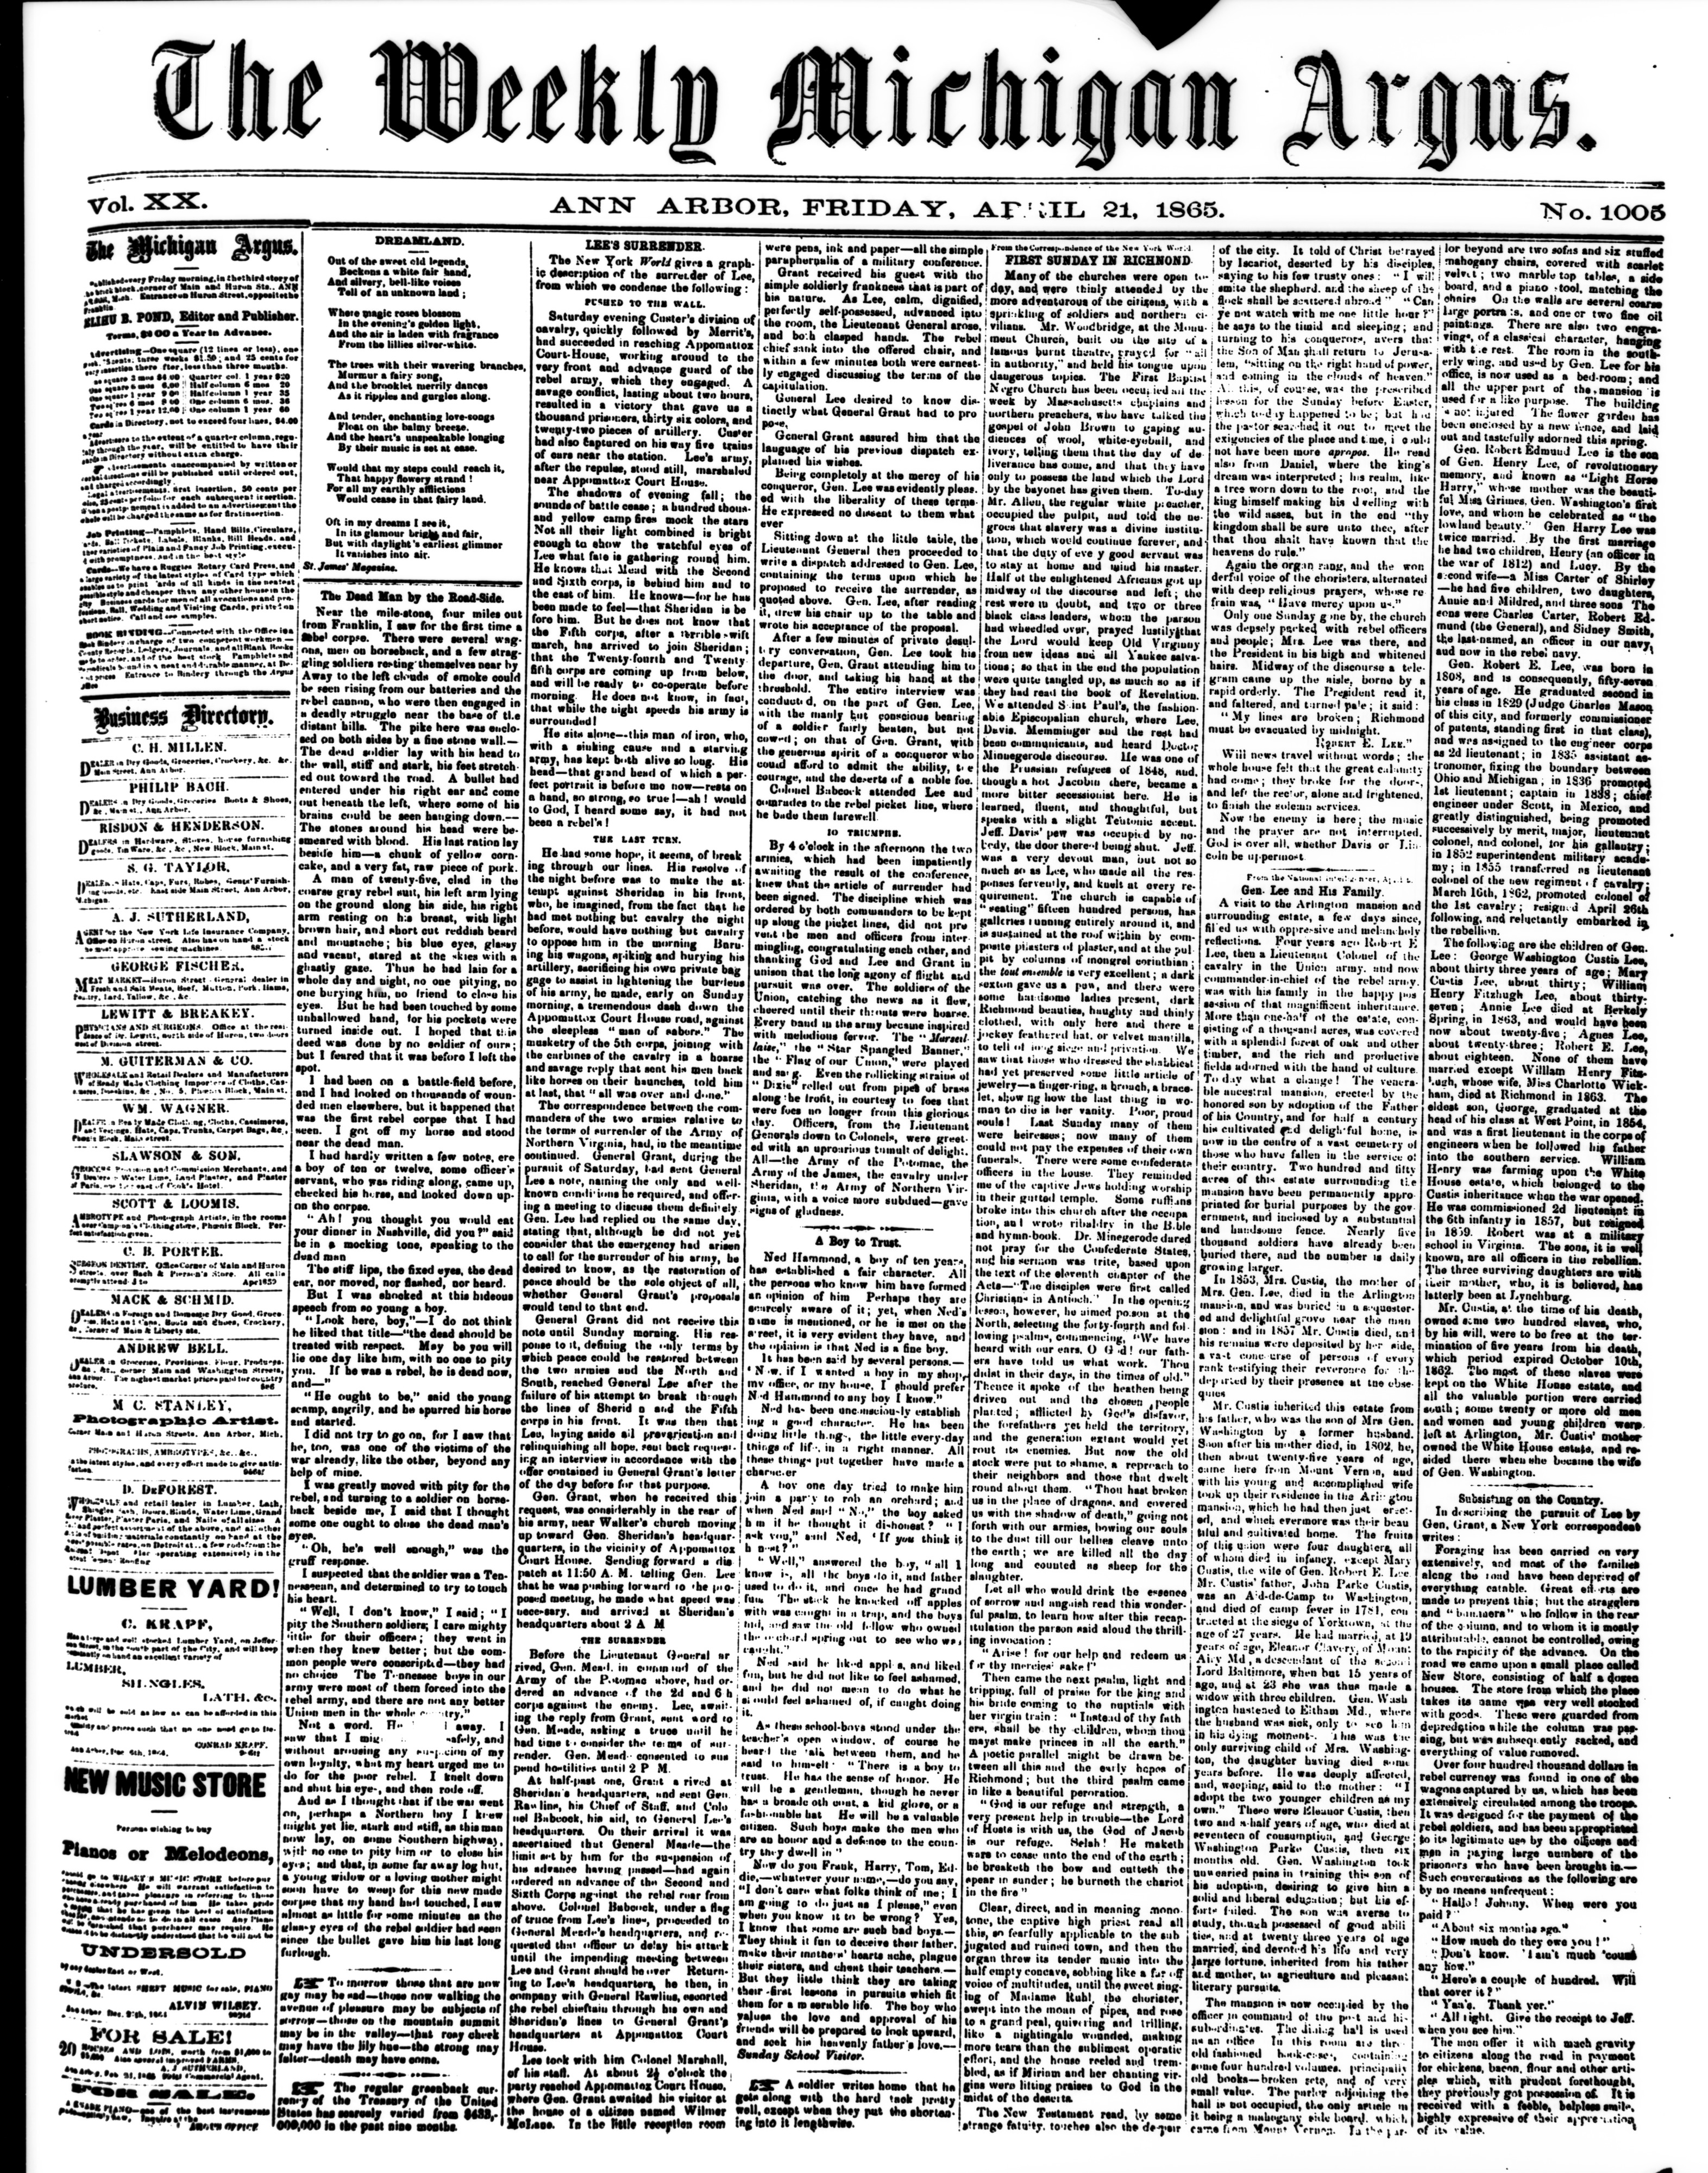 Full front page of April 21, 1865 issue of the Weekly Michigan Argus, October 1966 image